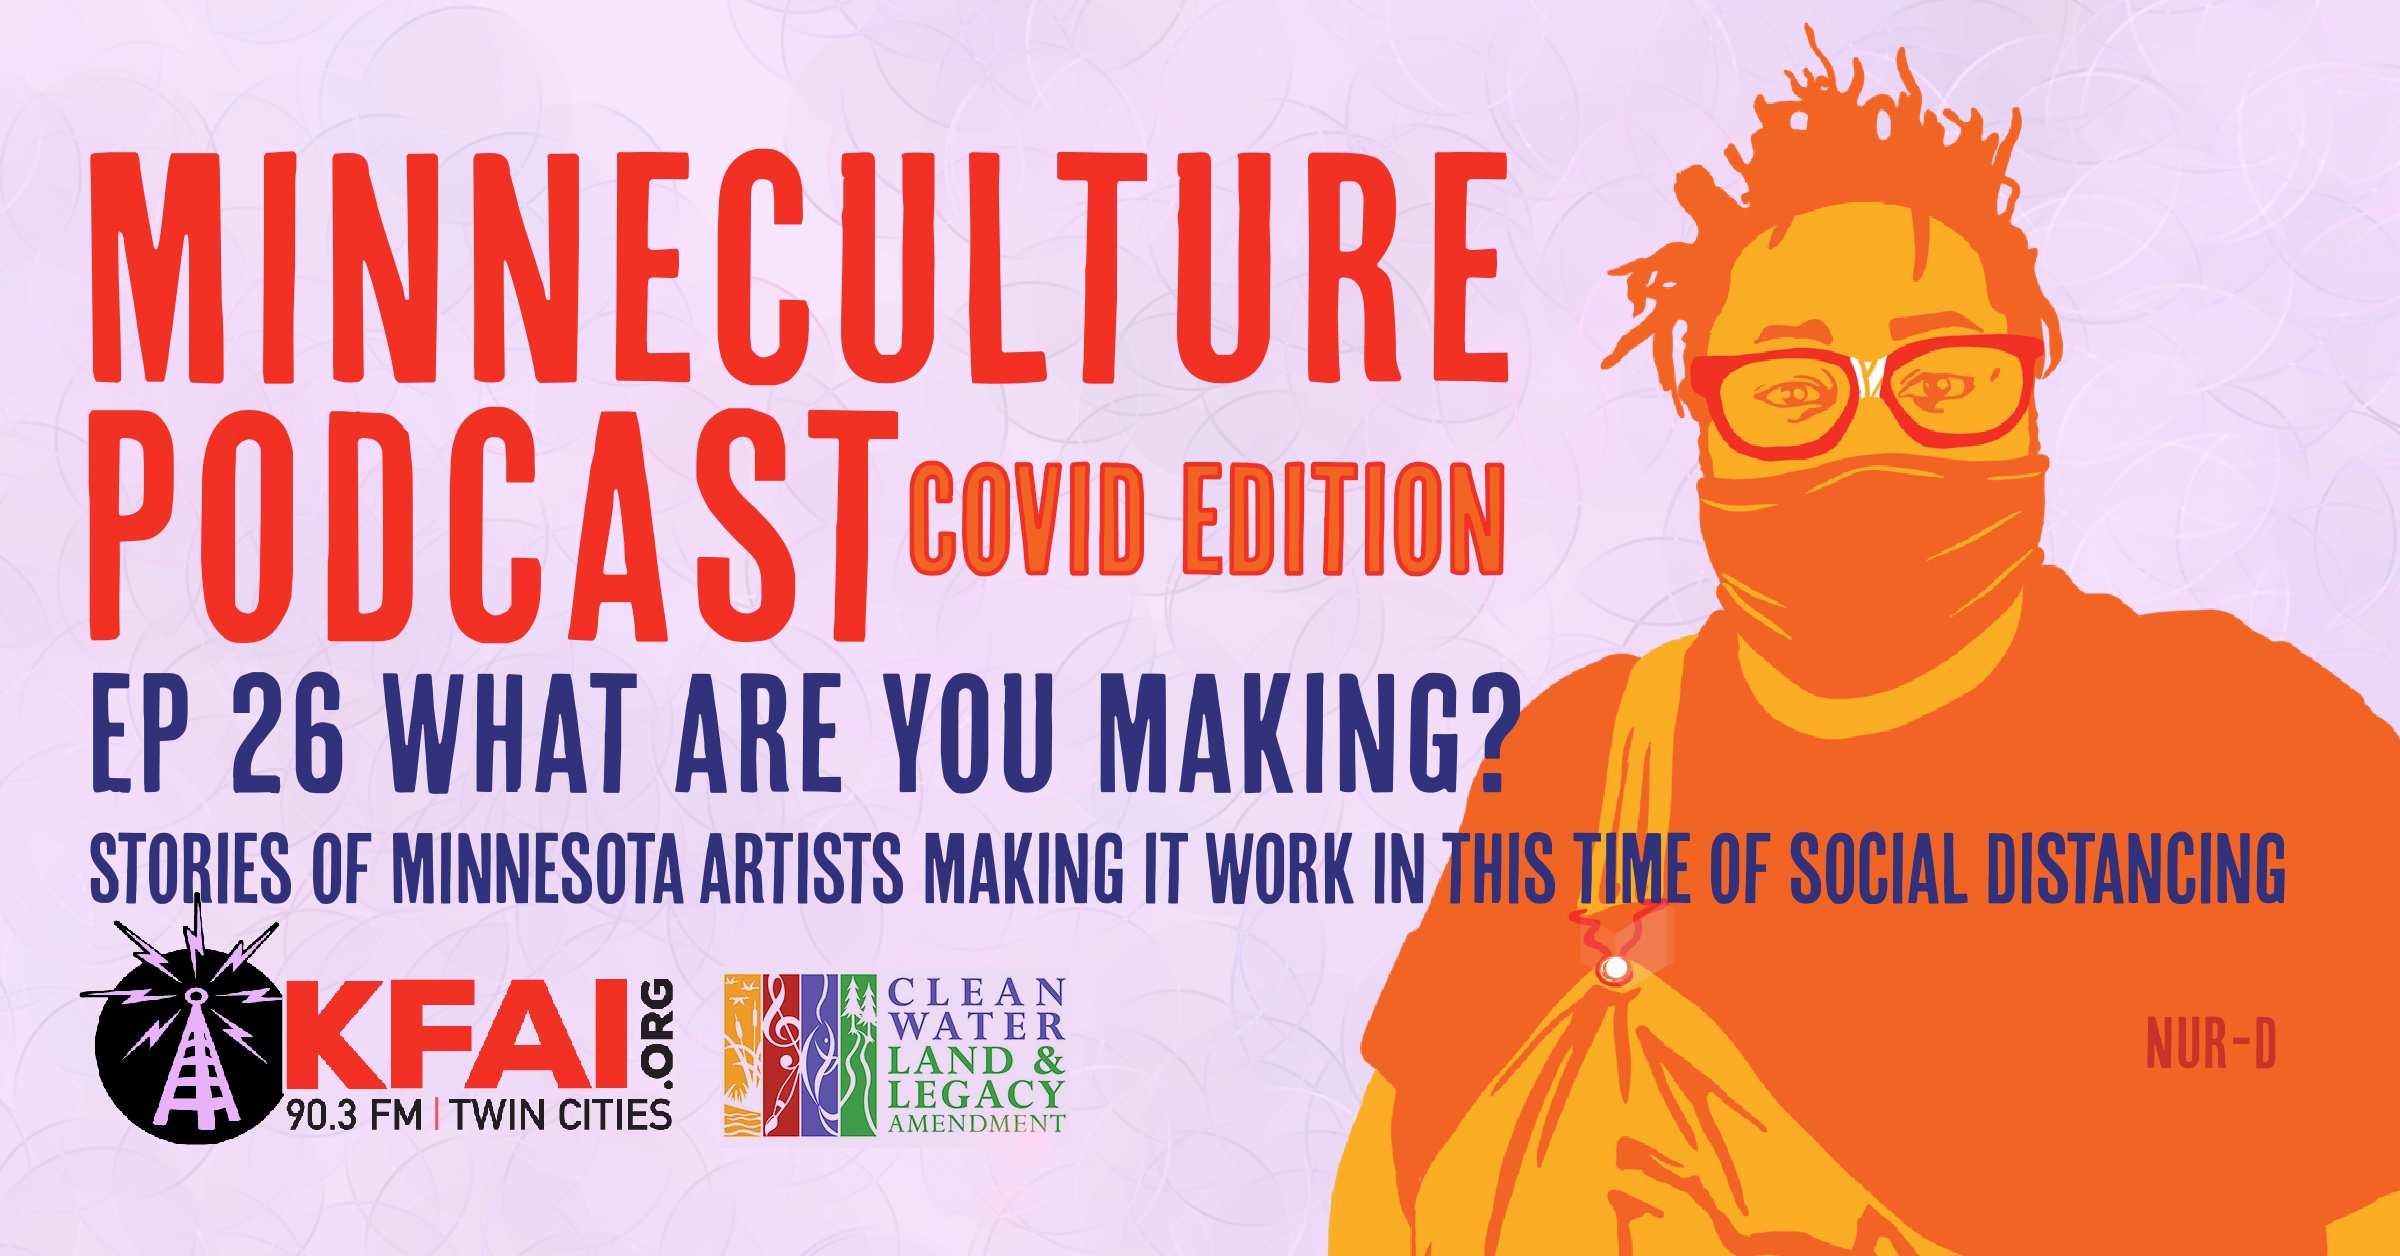 MinneCulture Podcast Graphic Covid Edition Ep 26 What are You making? Minnesota Artists Making it work in this time of social distancing